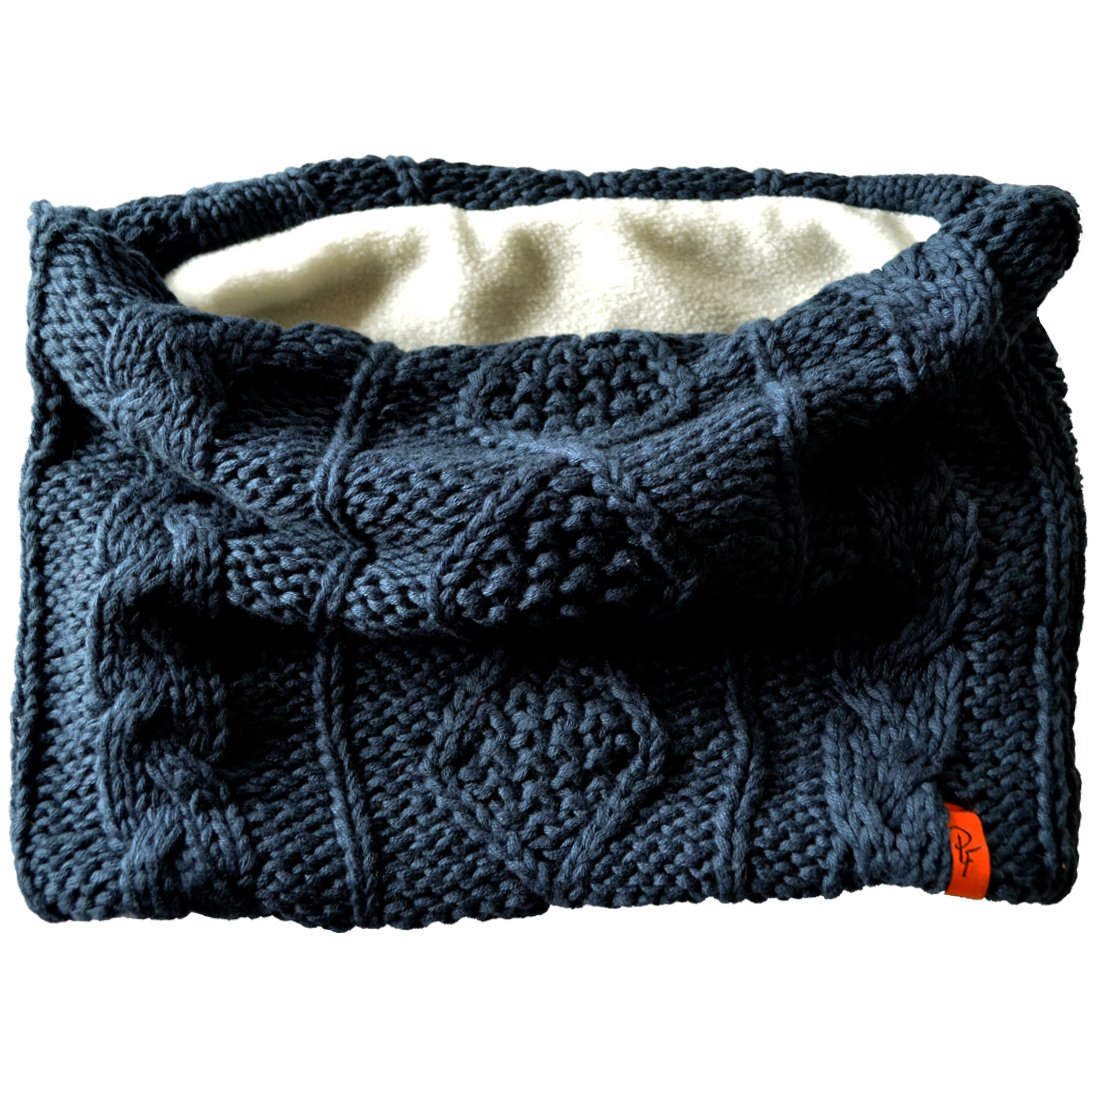 Patrick Francis Kids Chunky Knitted Style Snood with Fleece Insert, Navy Colour